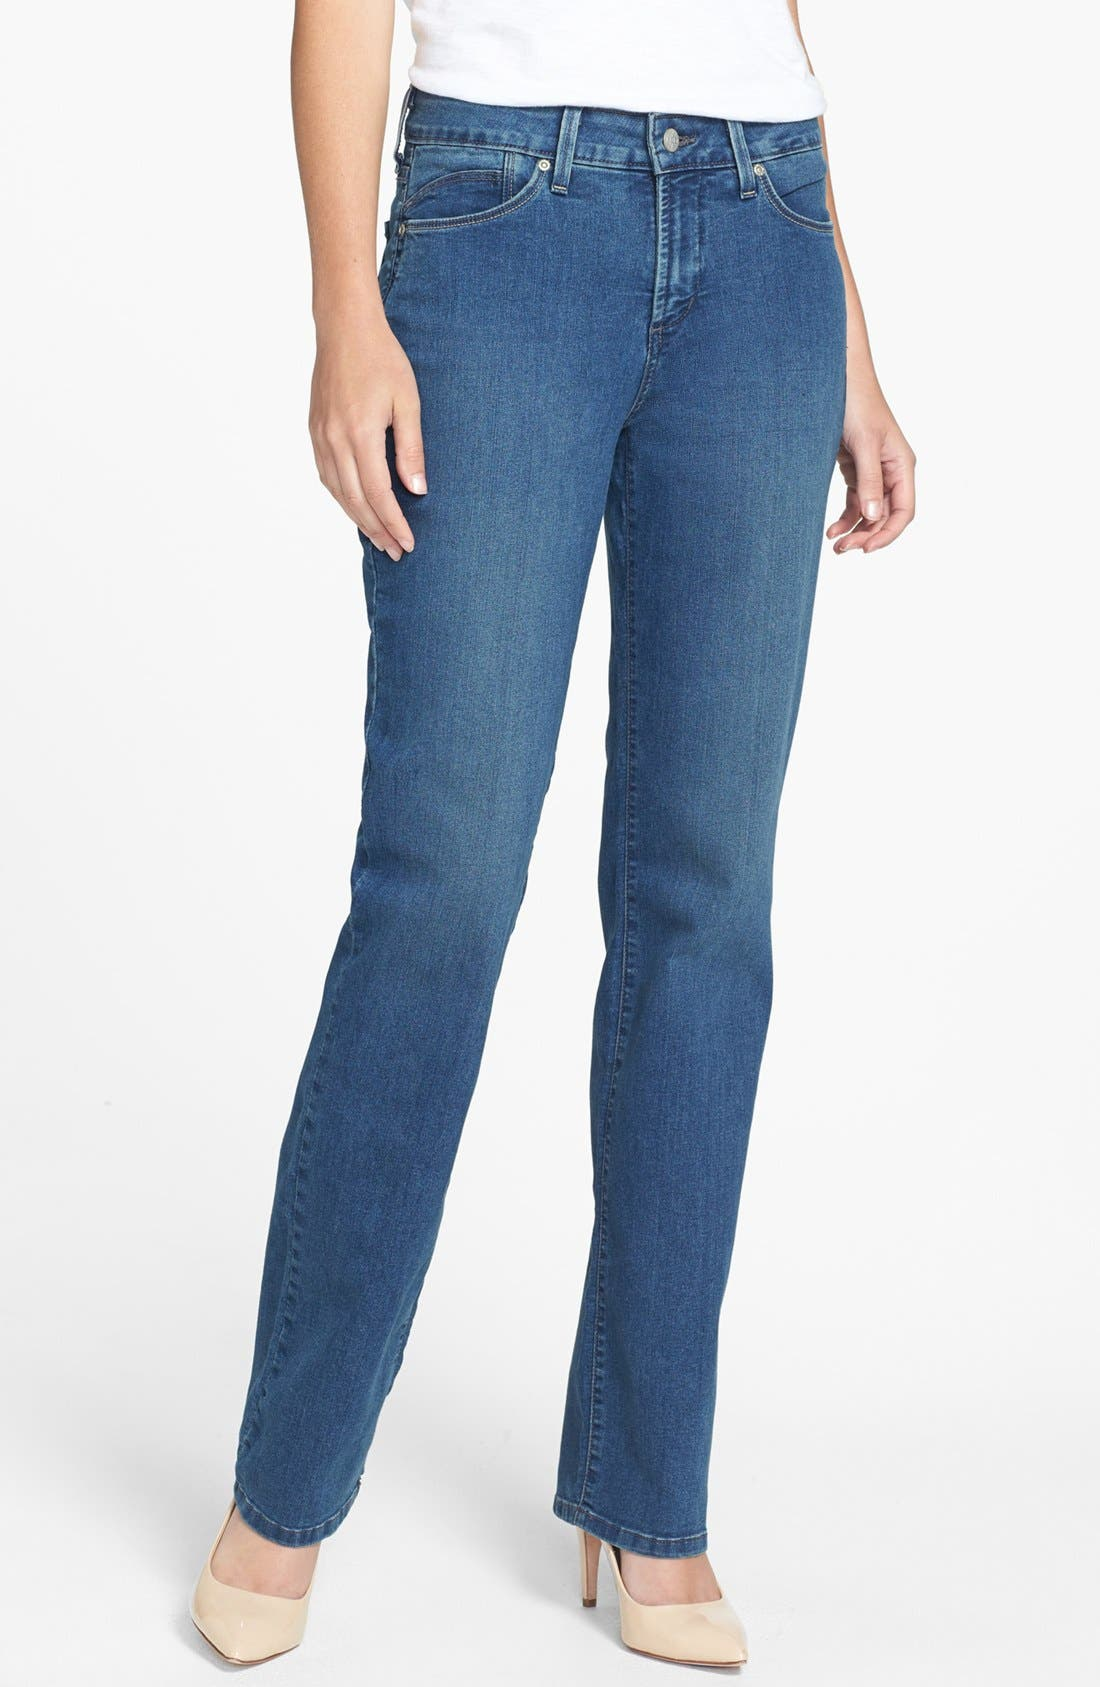 Main Image - NYDJ 'Marilyn' Stretch Straight Leg Jeans (Regular & Petite)